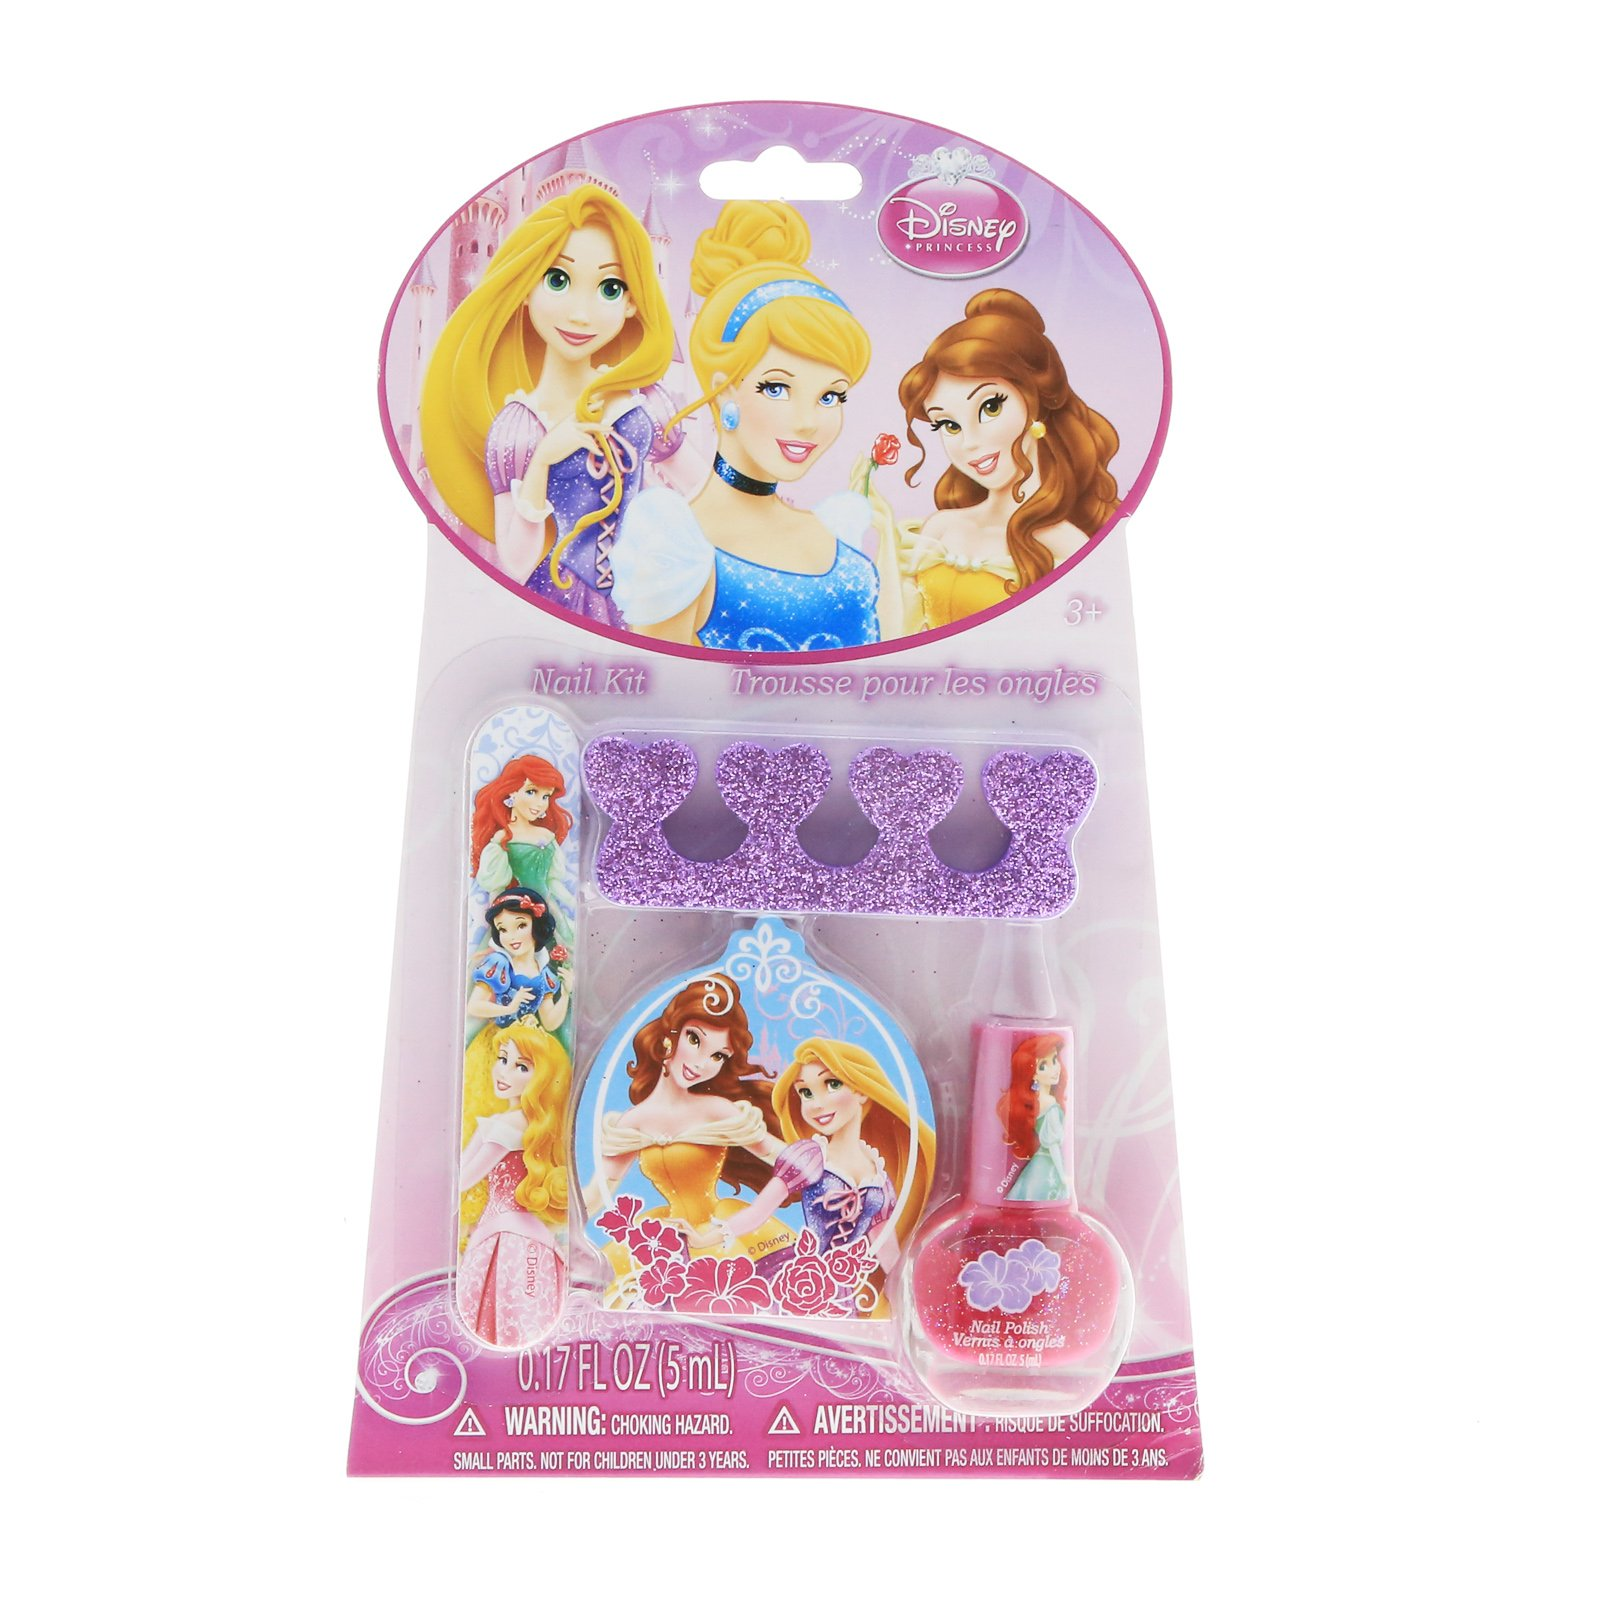 Disney Princess Nail Polish Kit Girls Gift Set Stocking Stuffer - Pink